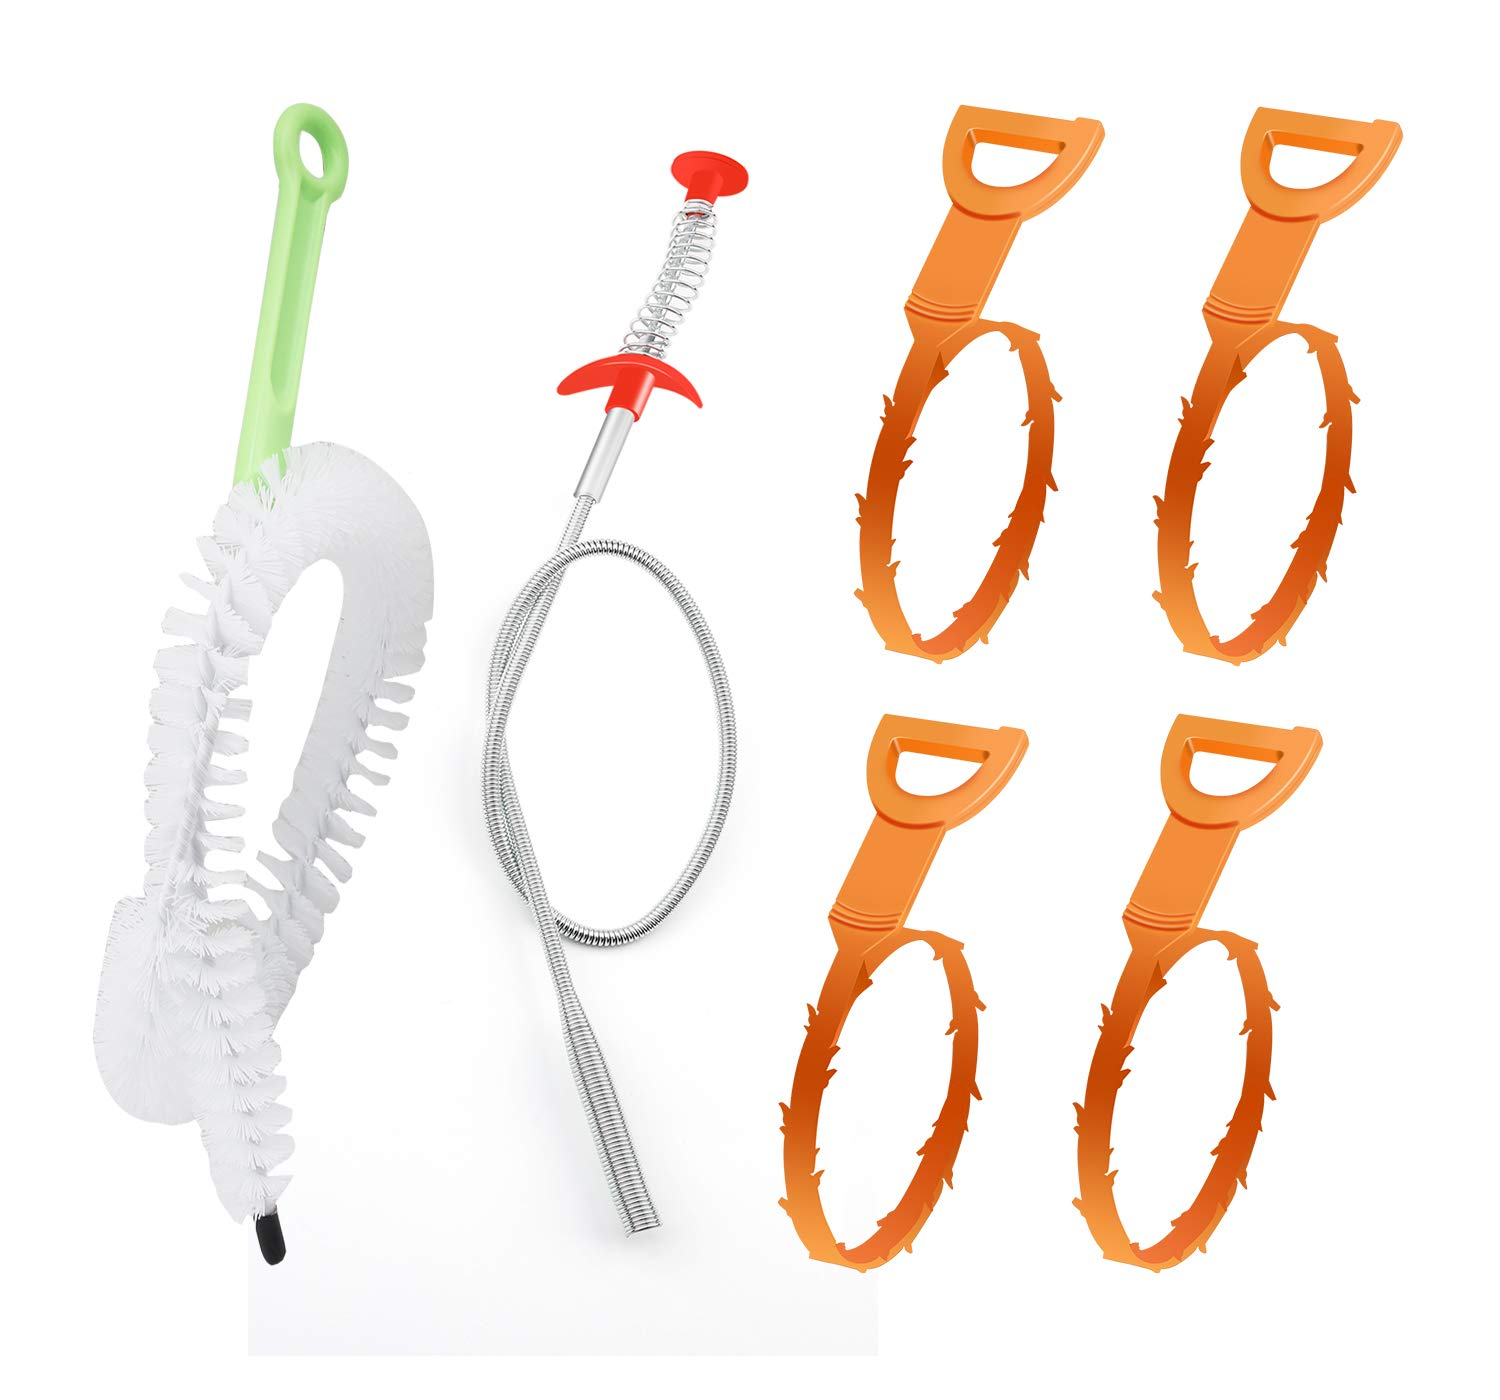 6 Pack Drain Snake Clog Remover, Drain Auger Hair Catcher Sink Drain for Bathroom Tub, Kitchen Sink, Sewer, Toilet, Pipe